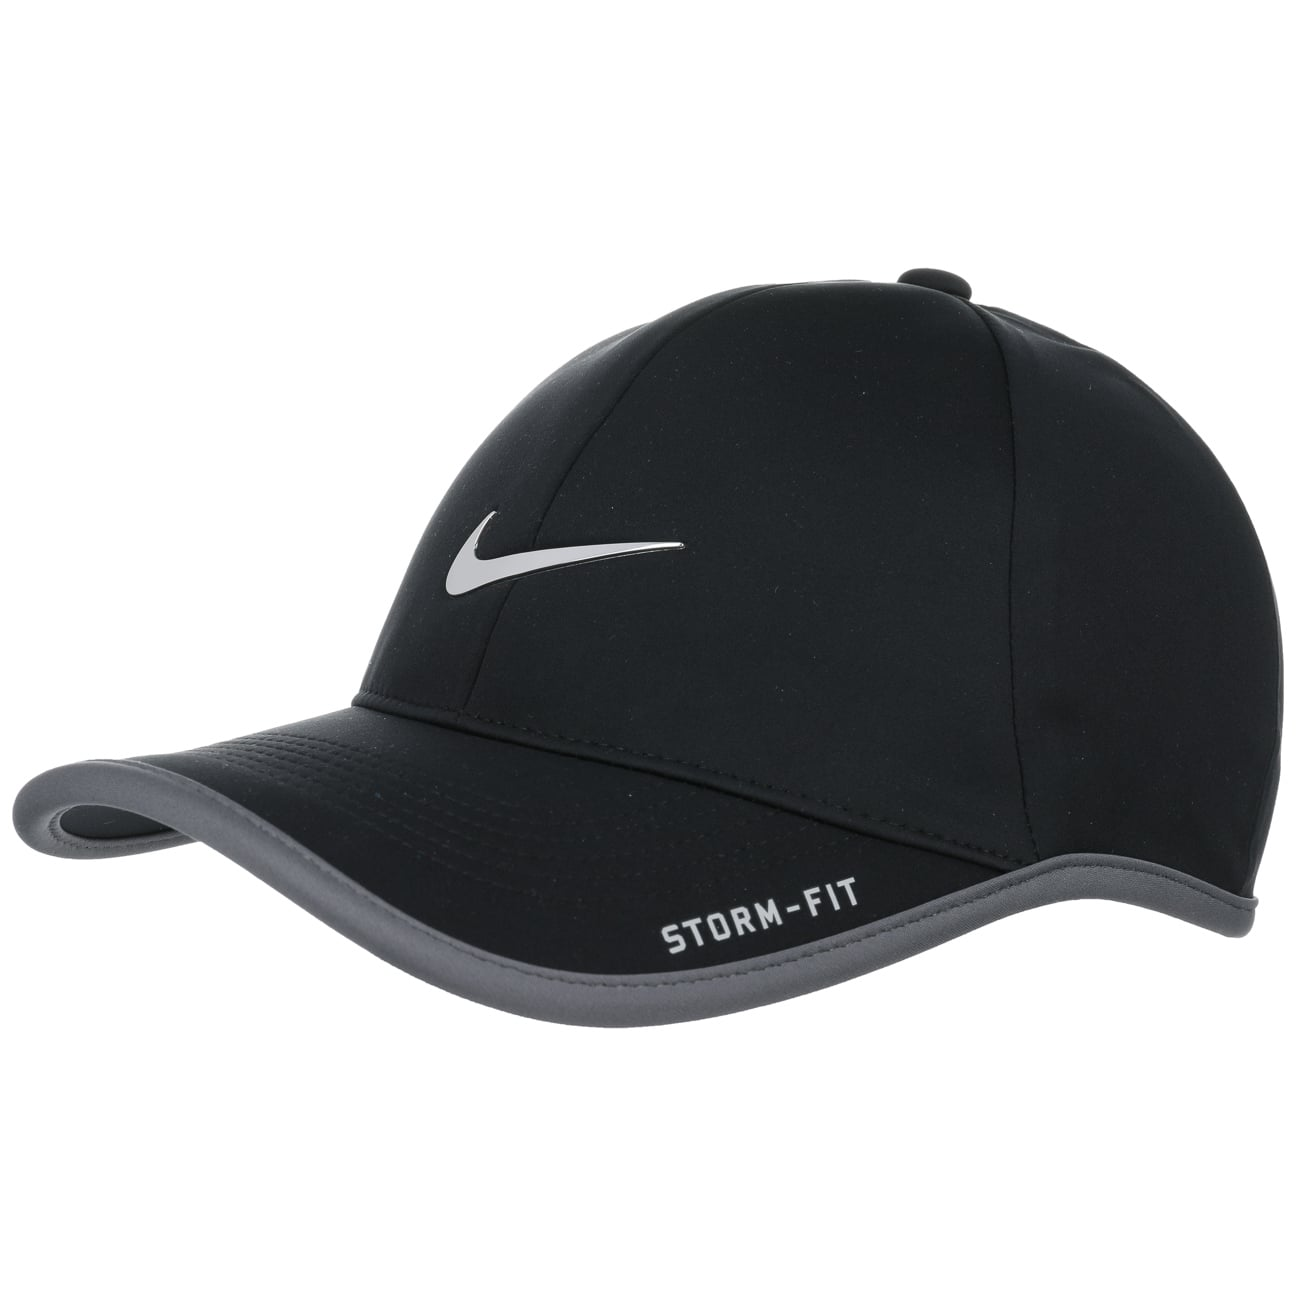 40b0868e6130a ... where to buy ultralight storm fit cap by nike black 3 8a406 ced7c